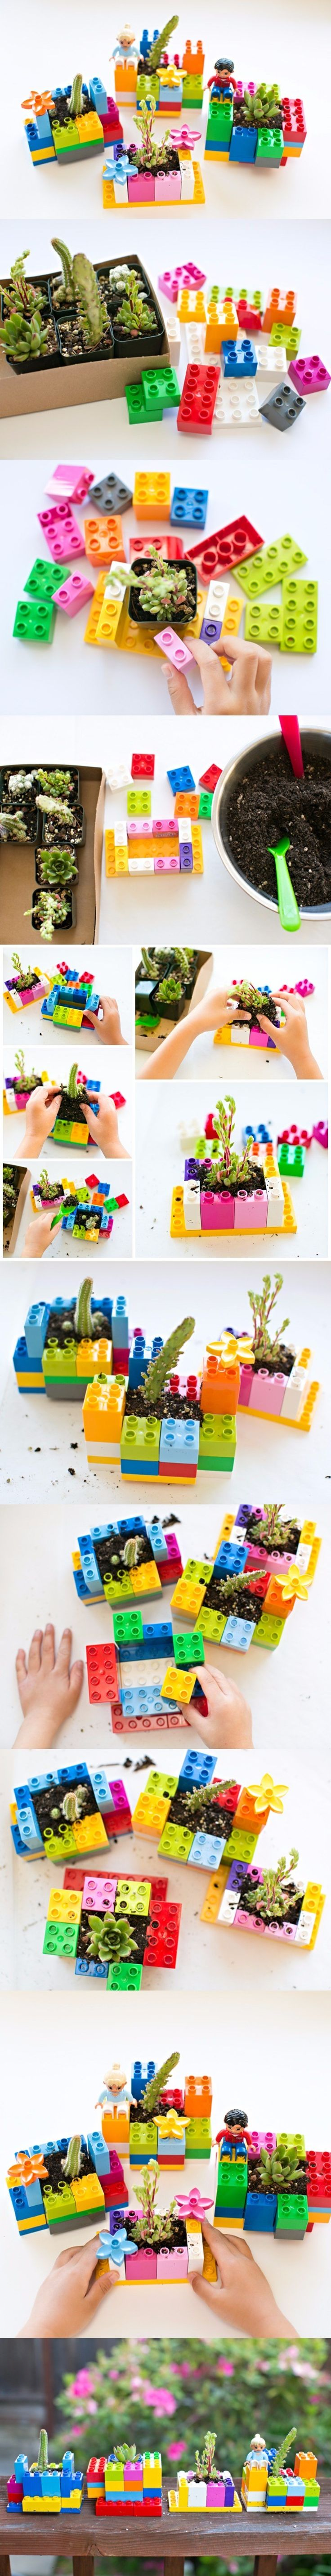 Macetas hechas con lego / http://www.hellowonderful.co/